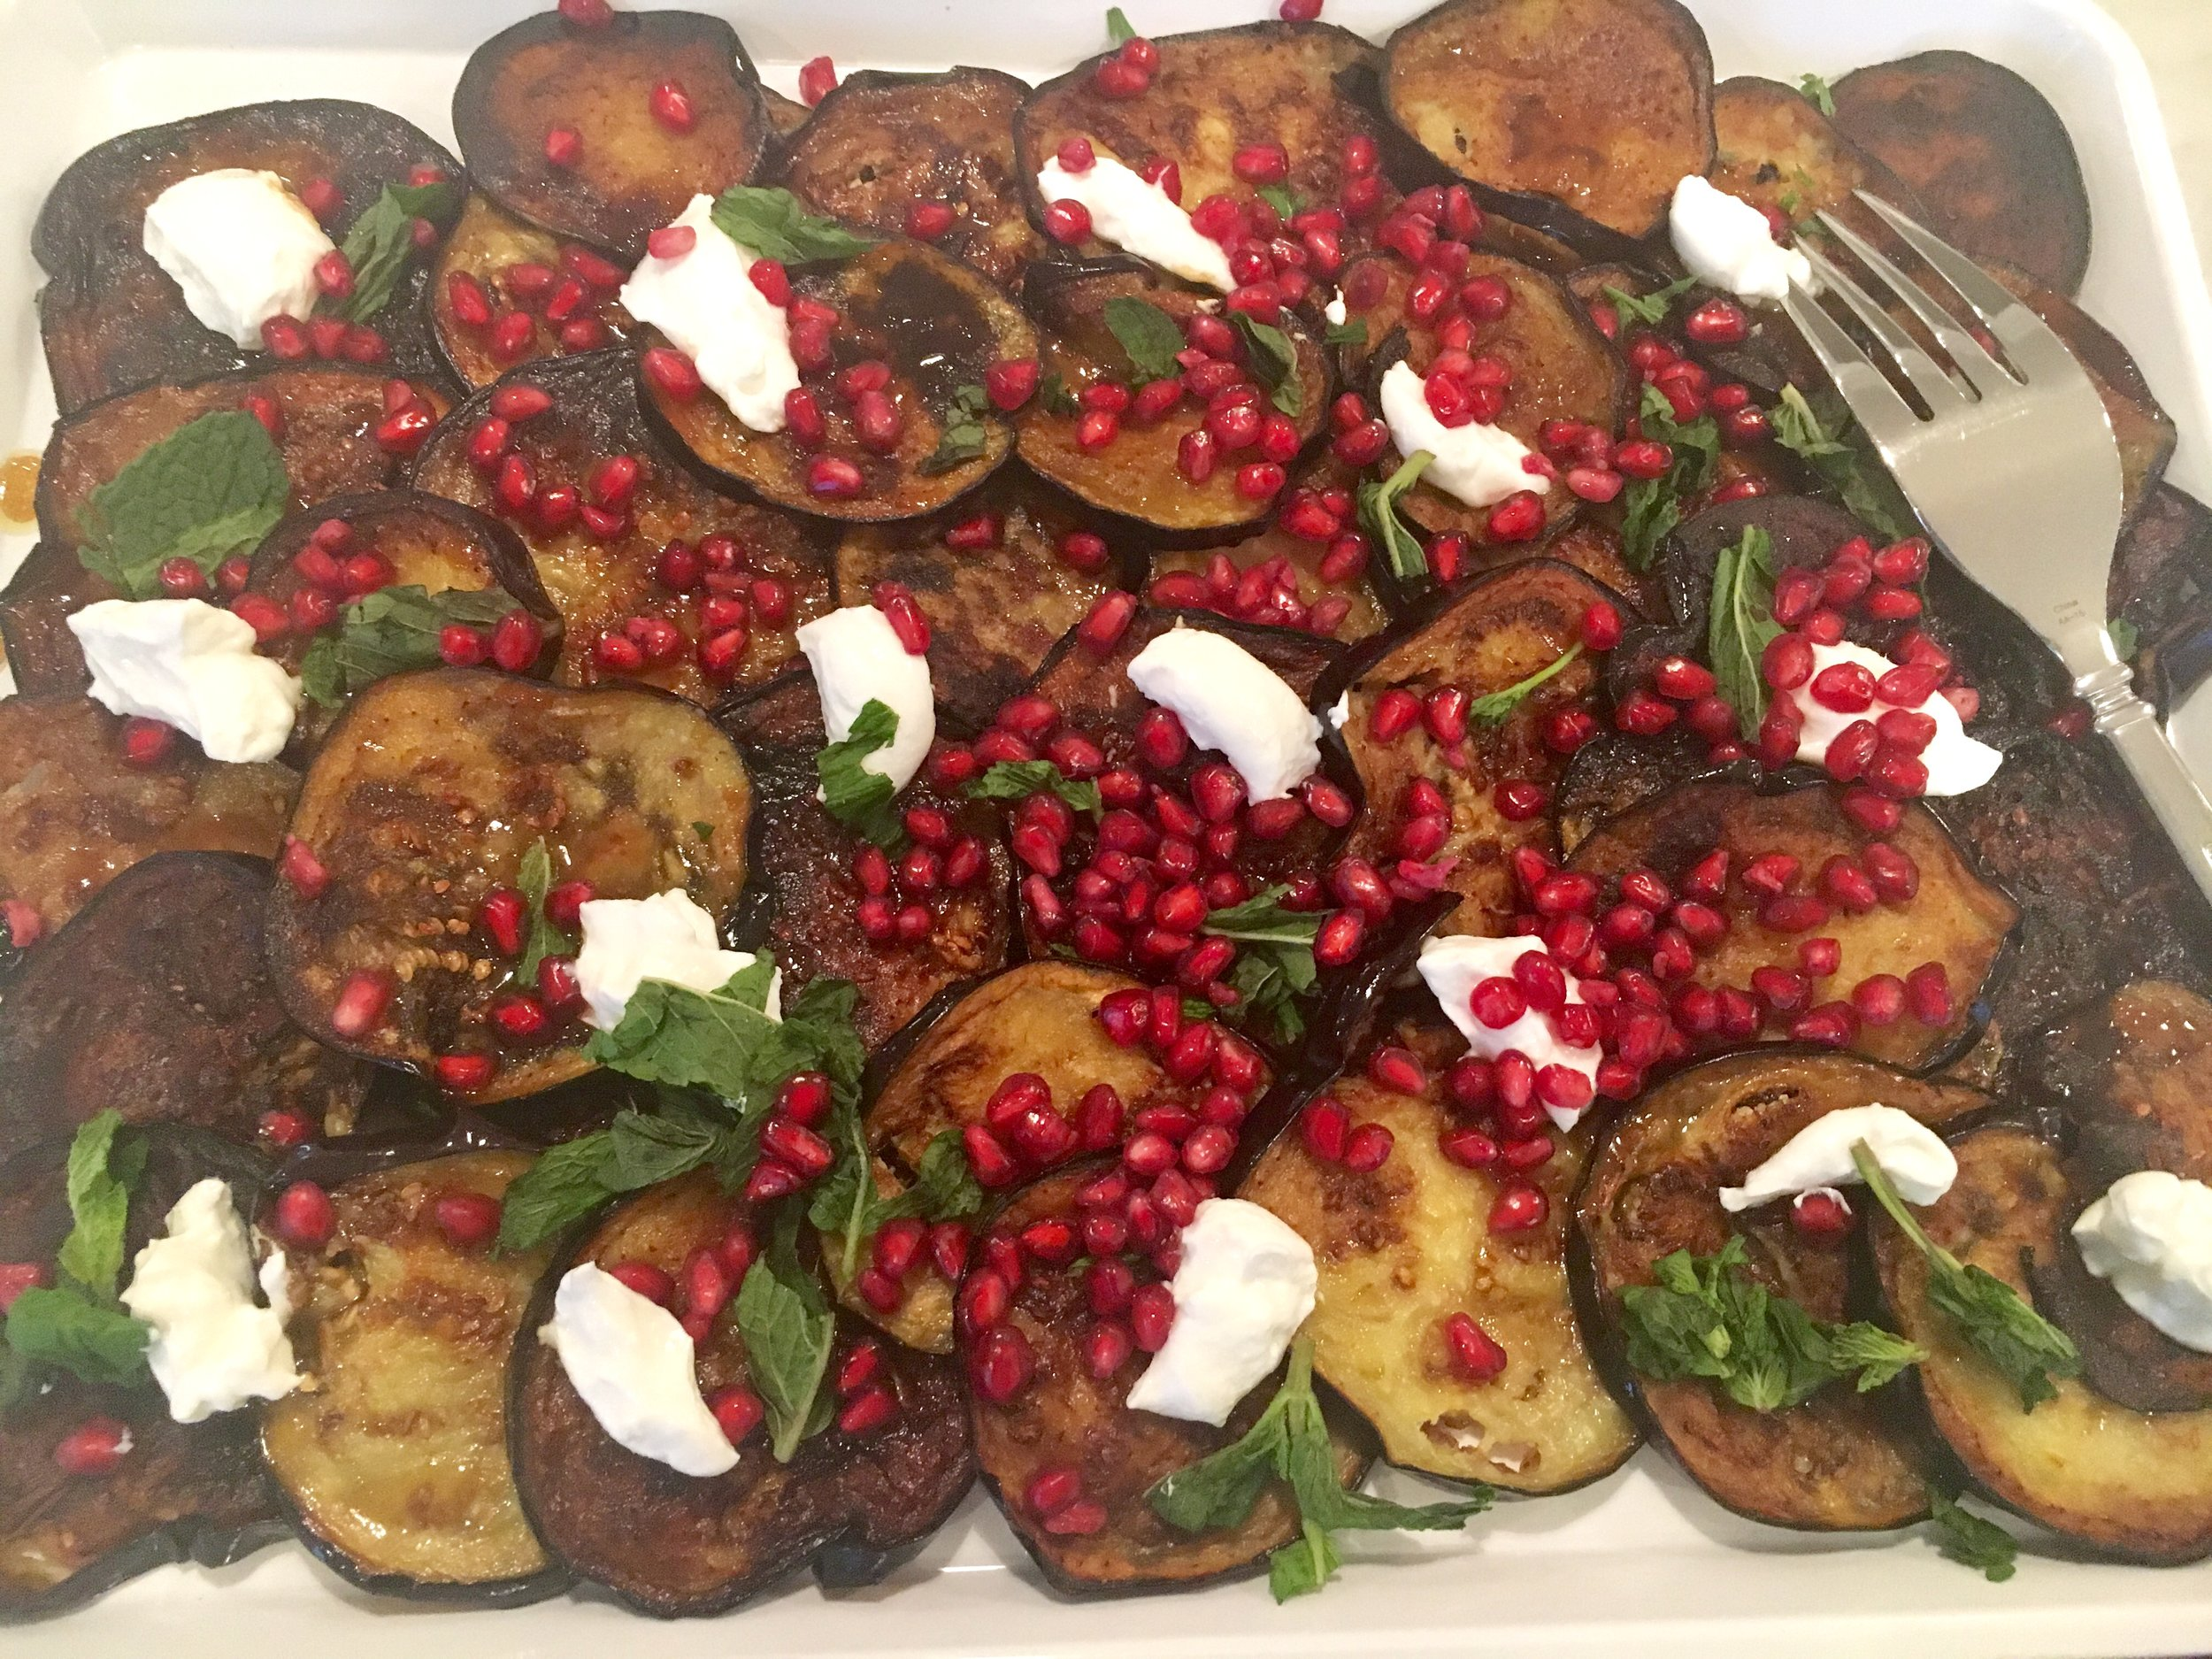 Eggplant with labneh, pomegranate and pomegranate molasses